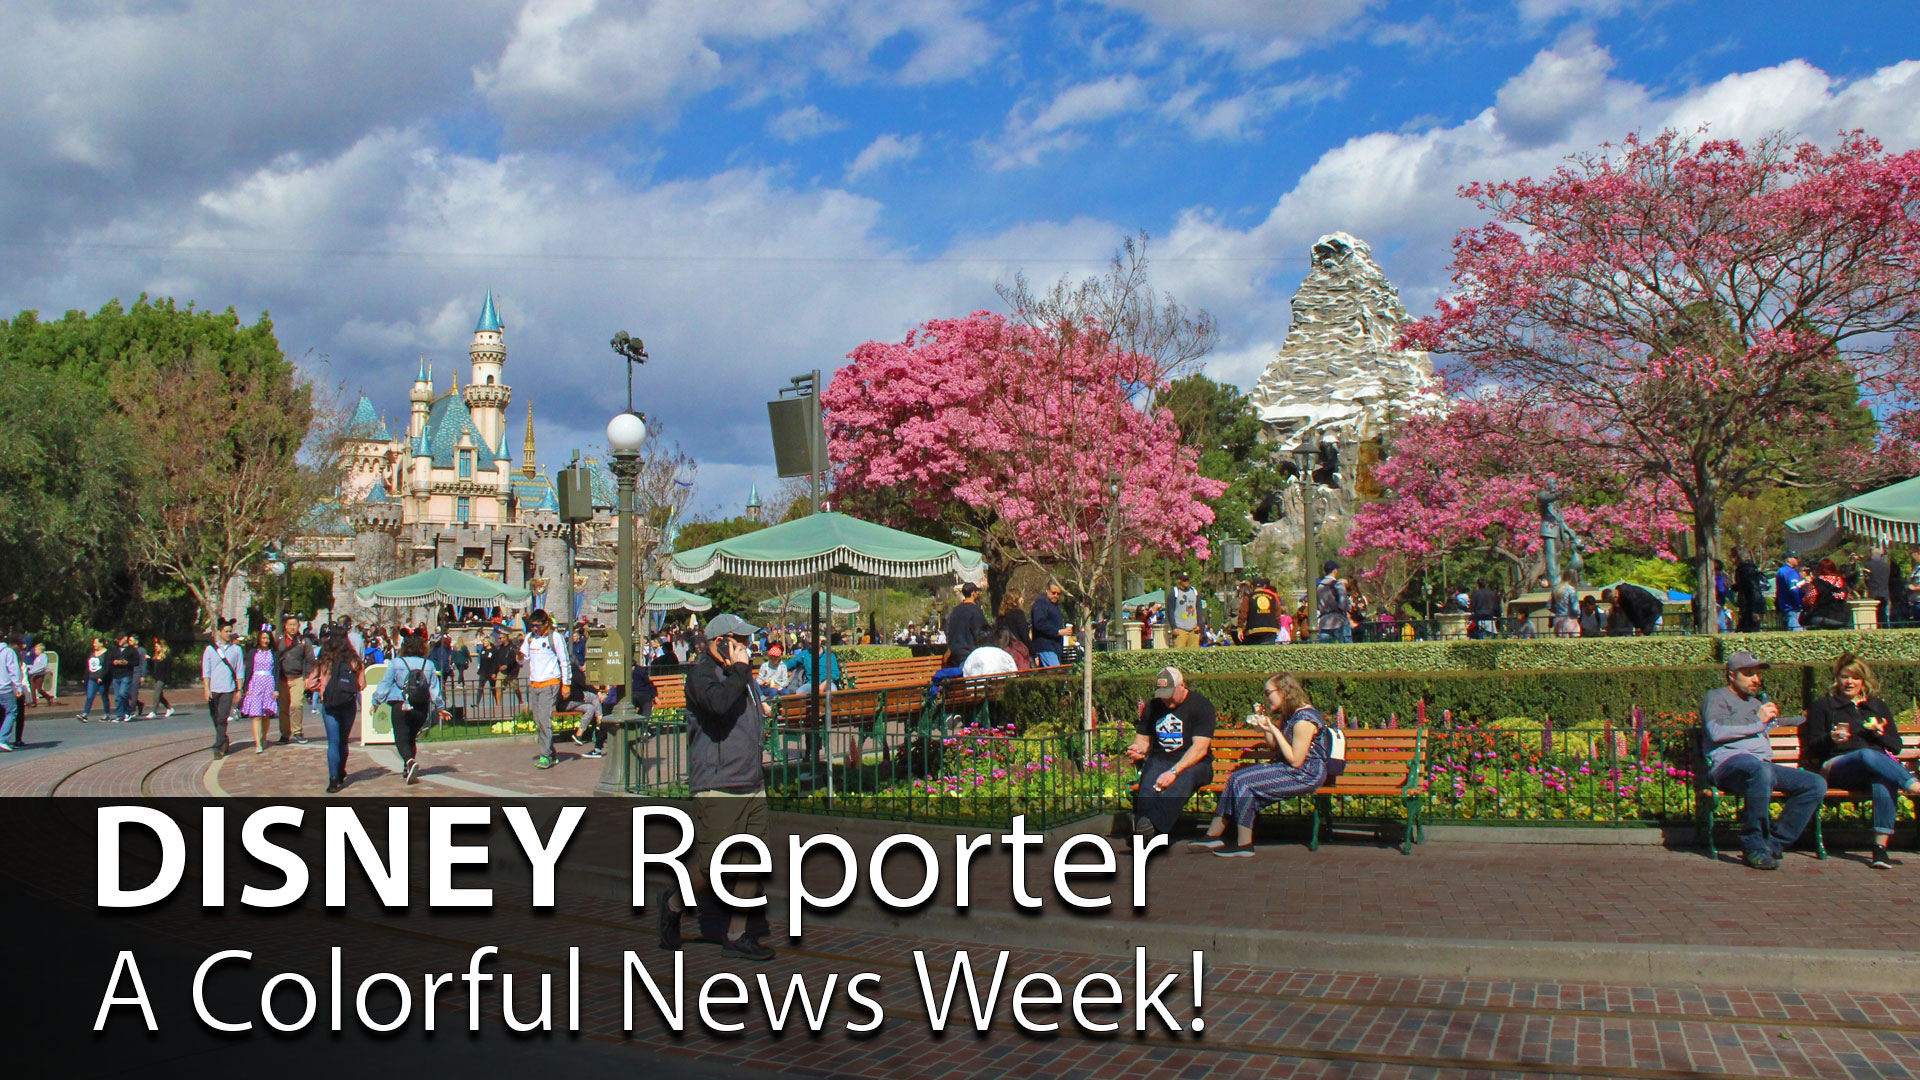 A Colorful News Week! – DISNEY Reporter